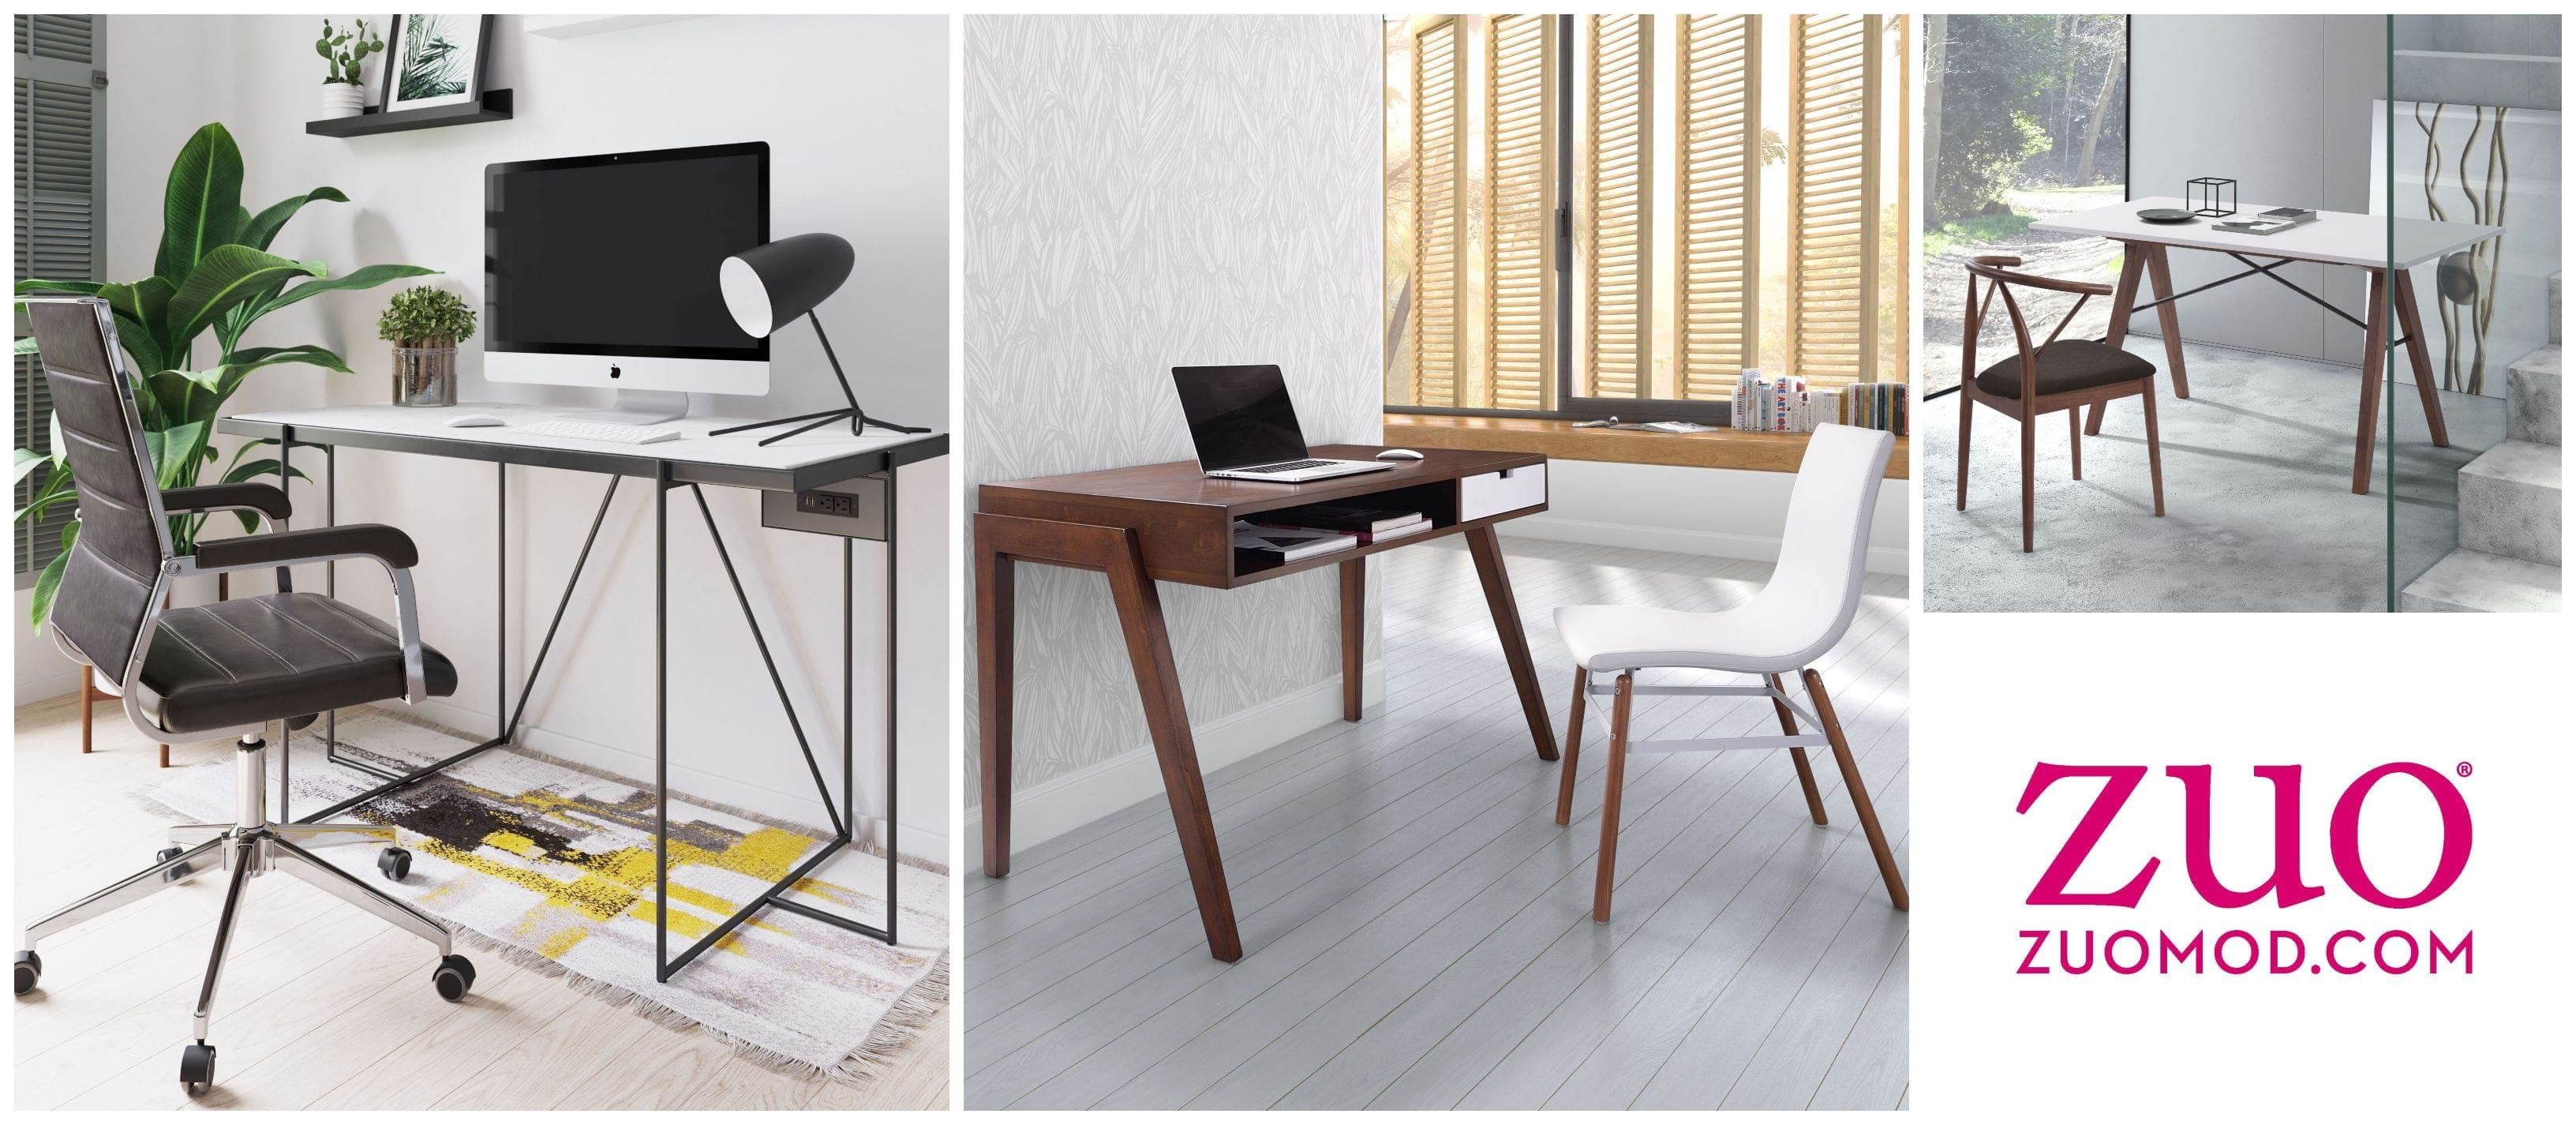 No space for a home office? A cloffice may be the answer